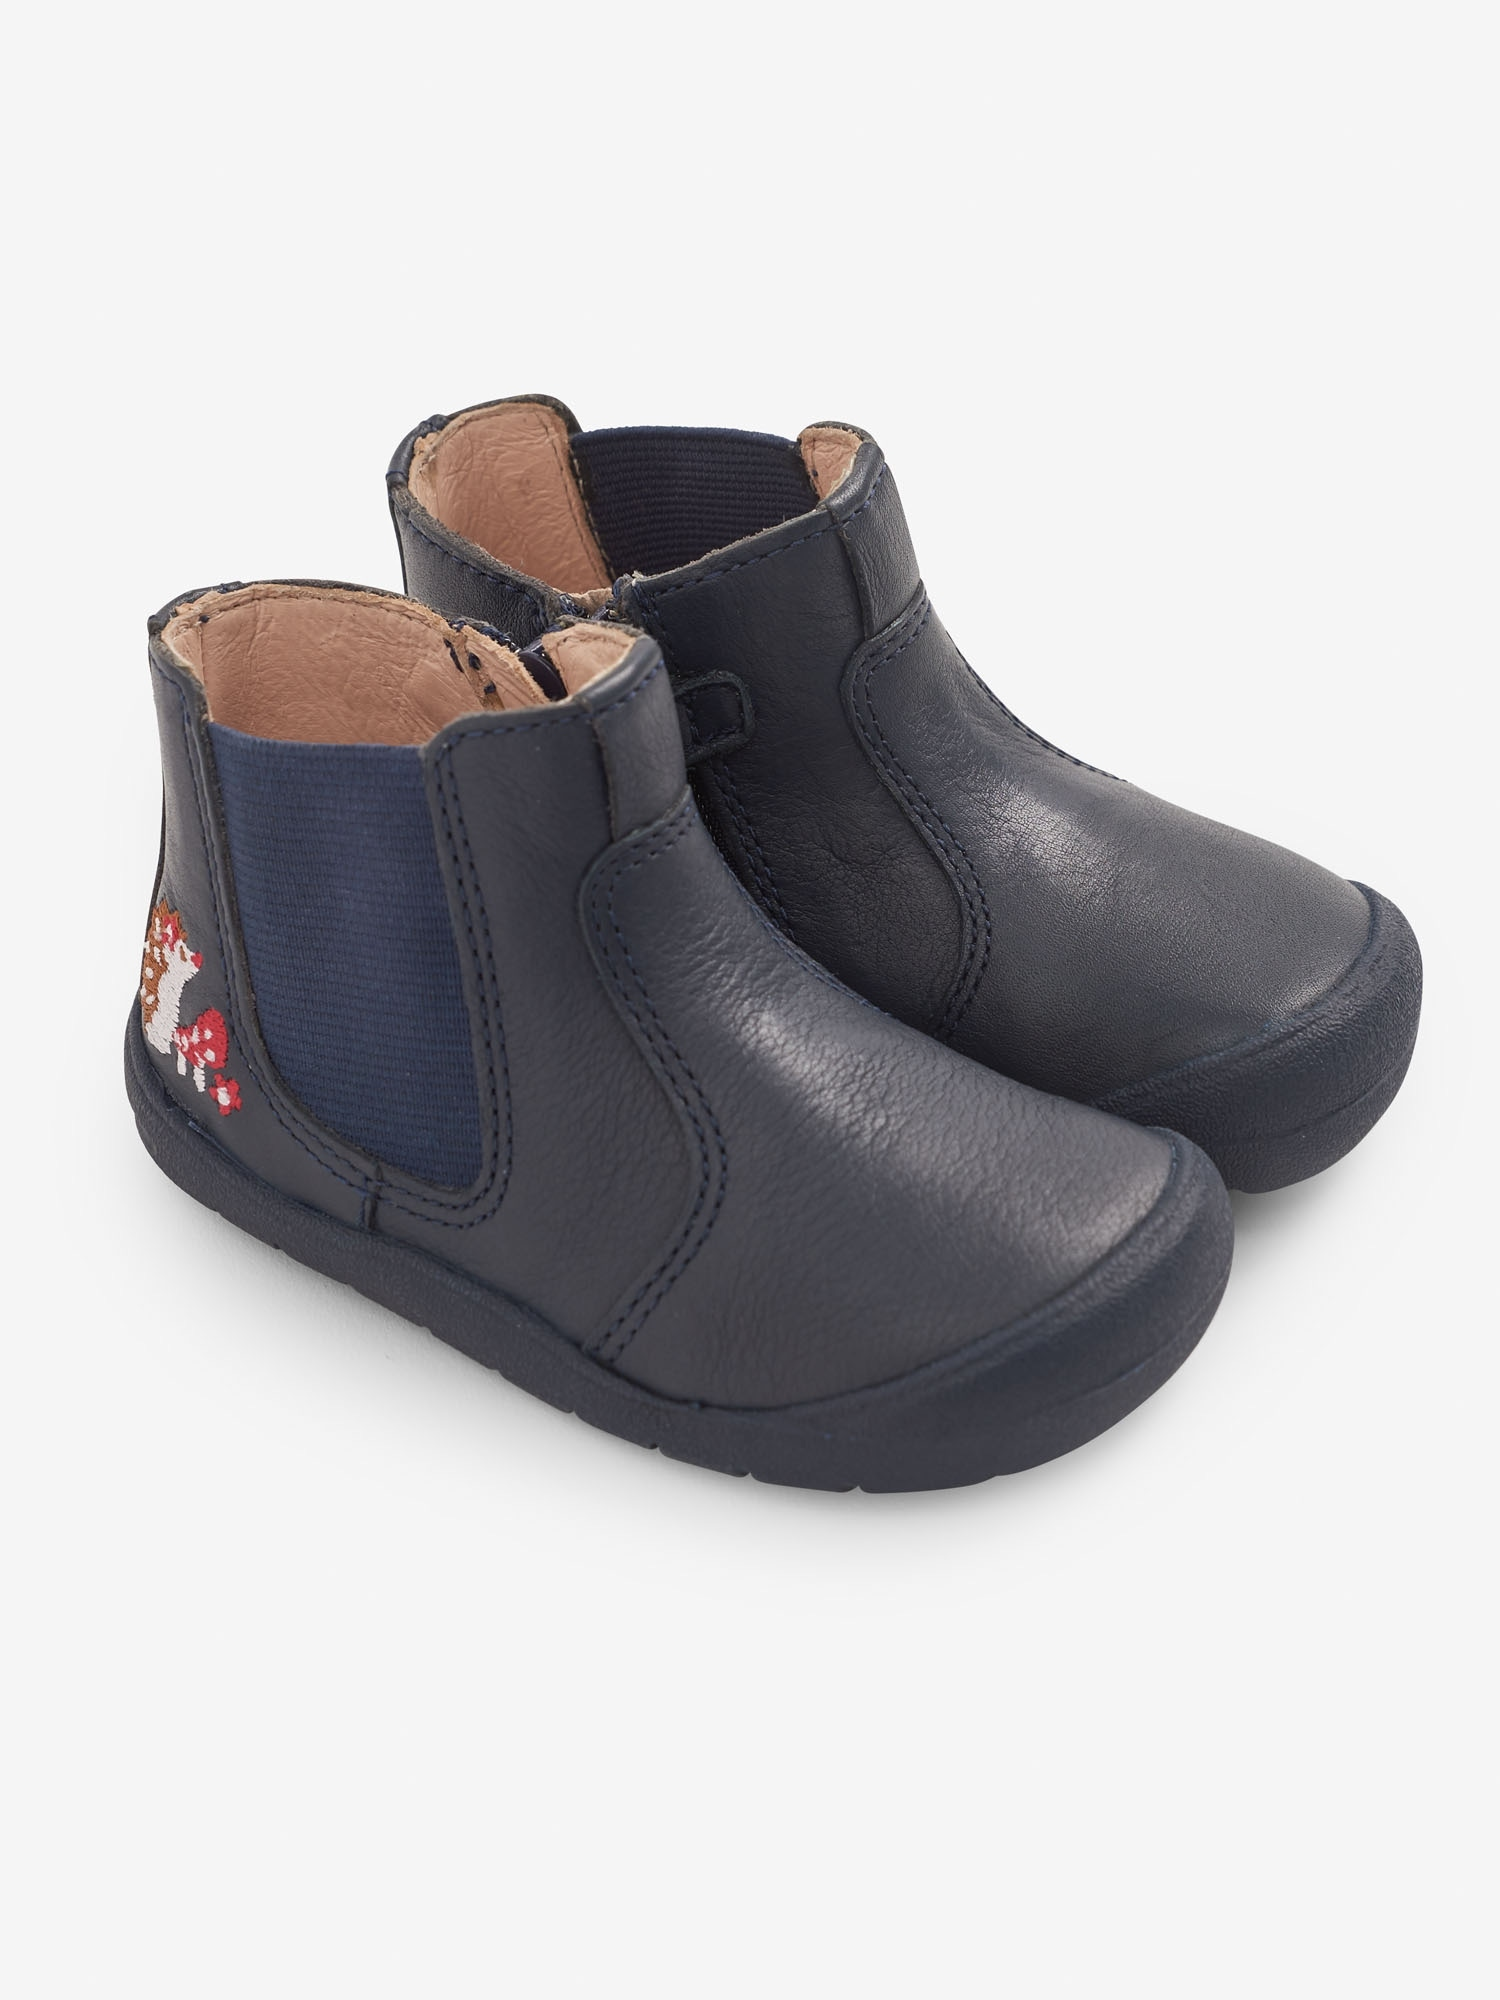 Start-Rite Navy Hedgehog Leather Boots